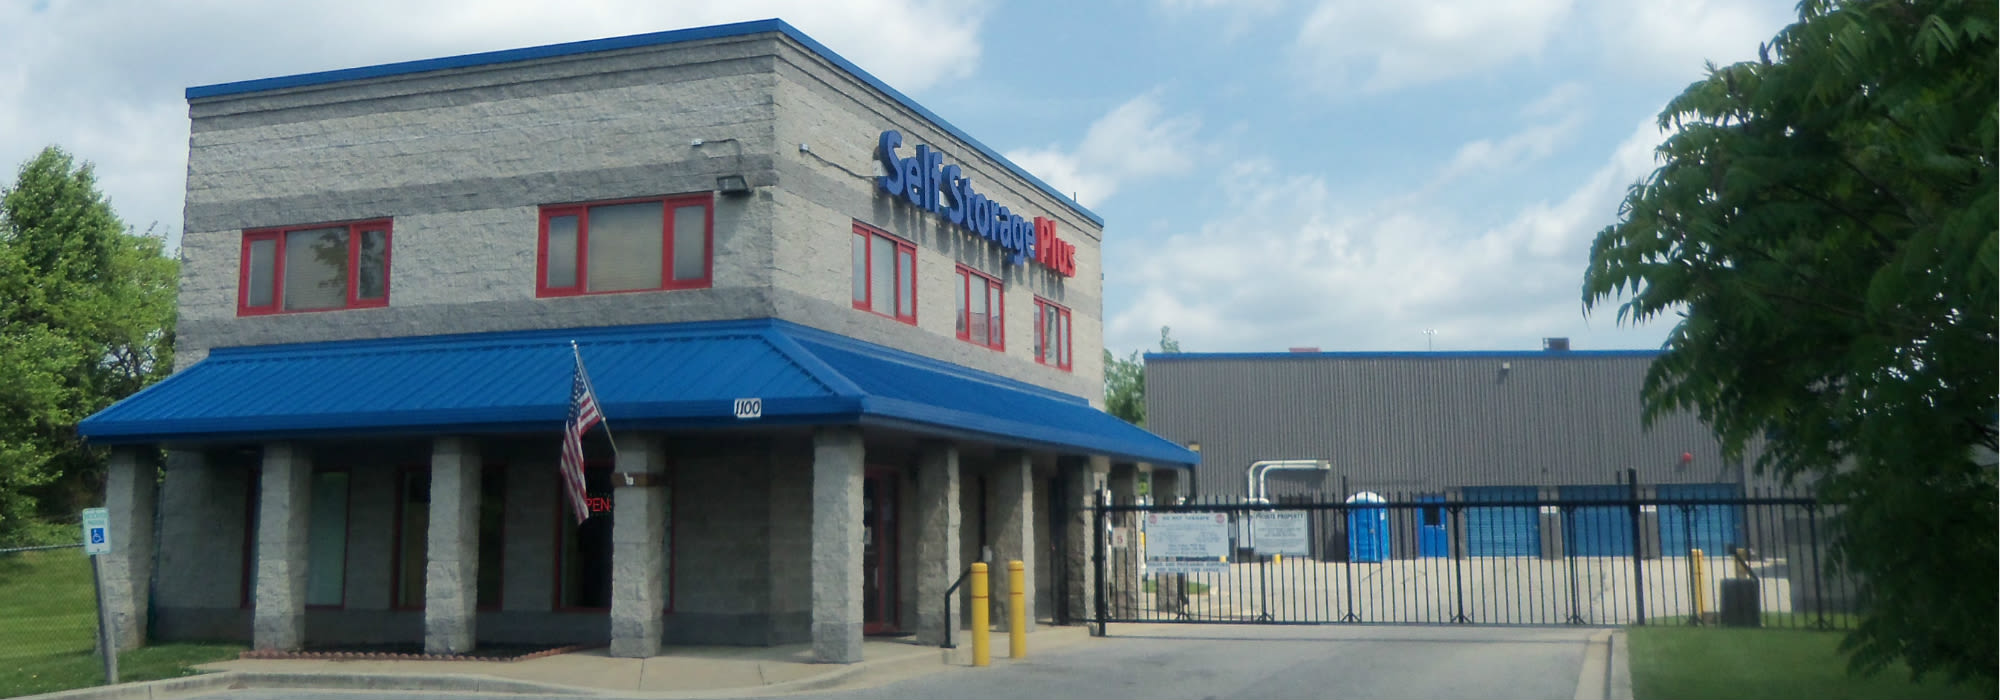 Self storage in Baltimore MD